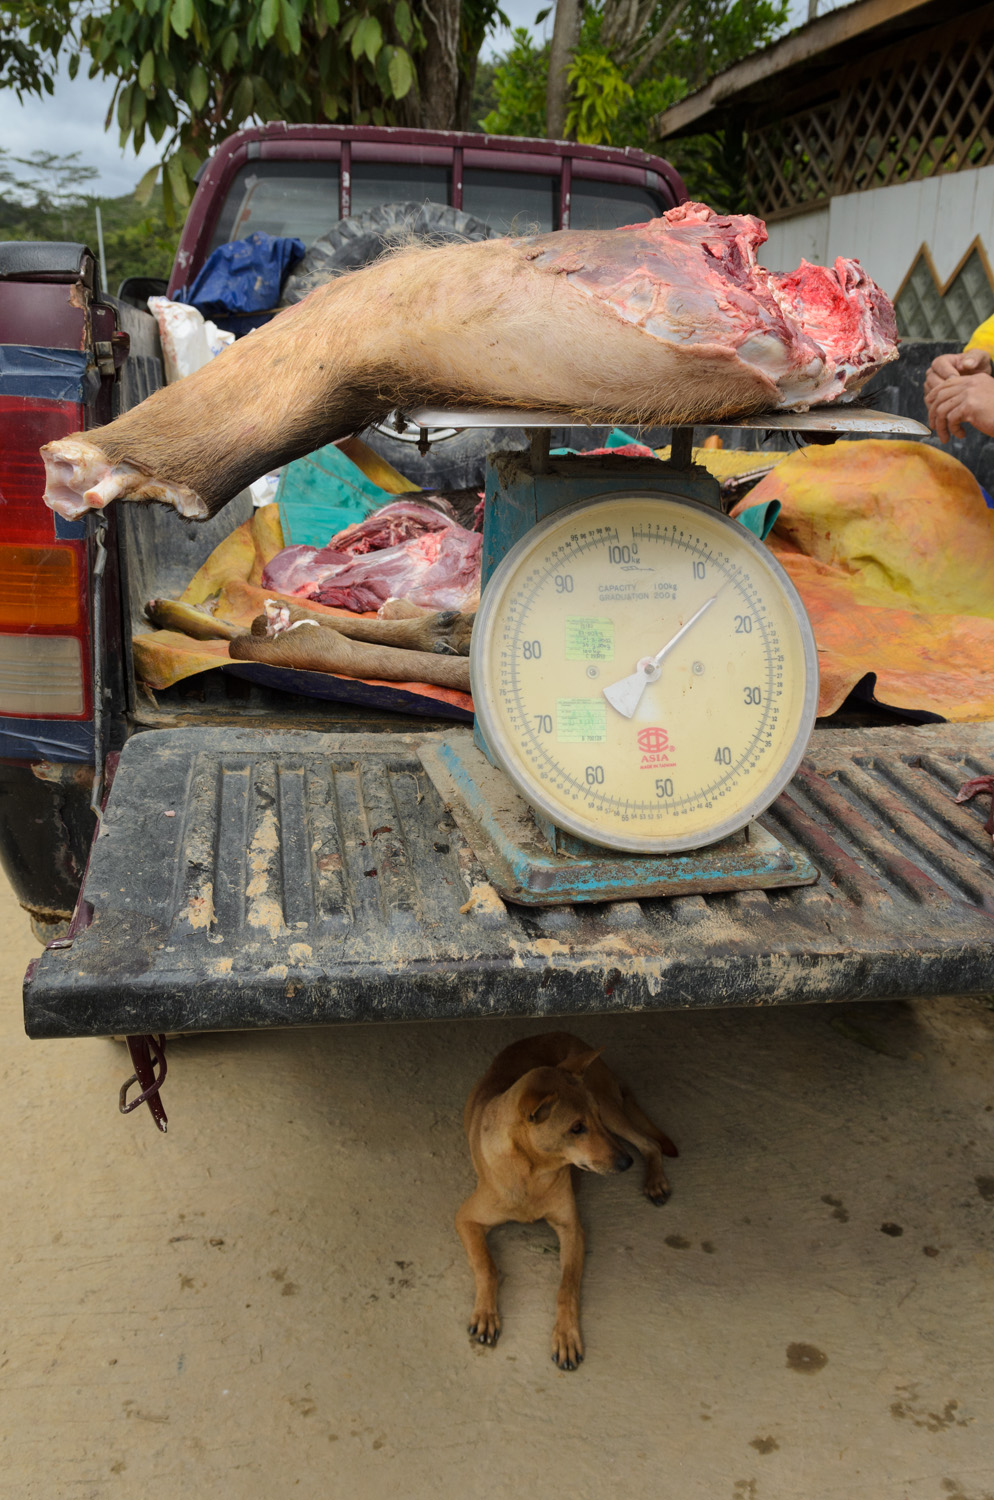 A dog rests beneath a truck carrying haunches of wild boar and venison in Bario town in Sarawak, Malaysia. A hunter caught the animals earlier in the day and was selling them to people in town. Wild meat is a main food staple of the region.